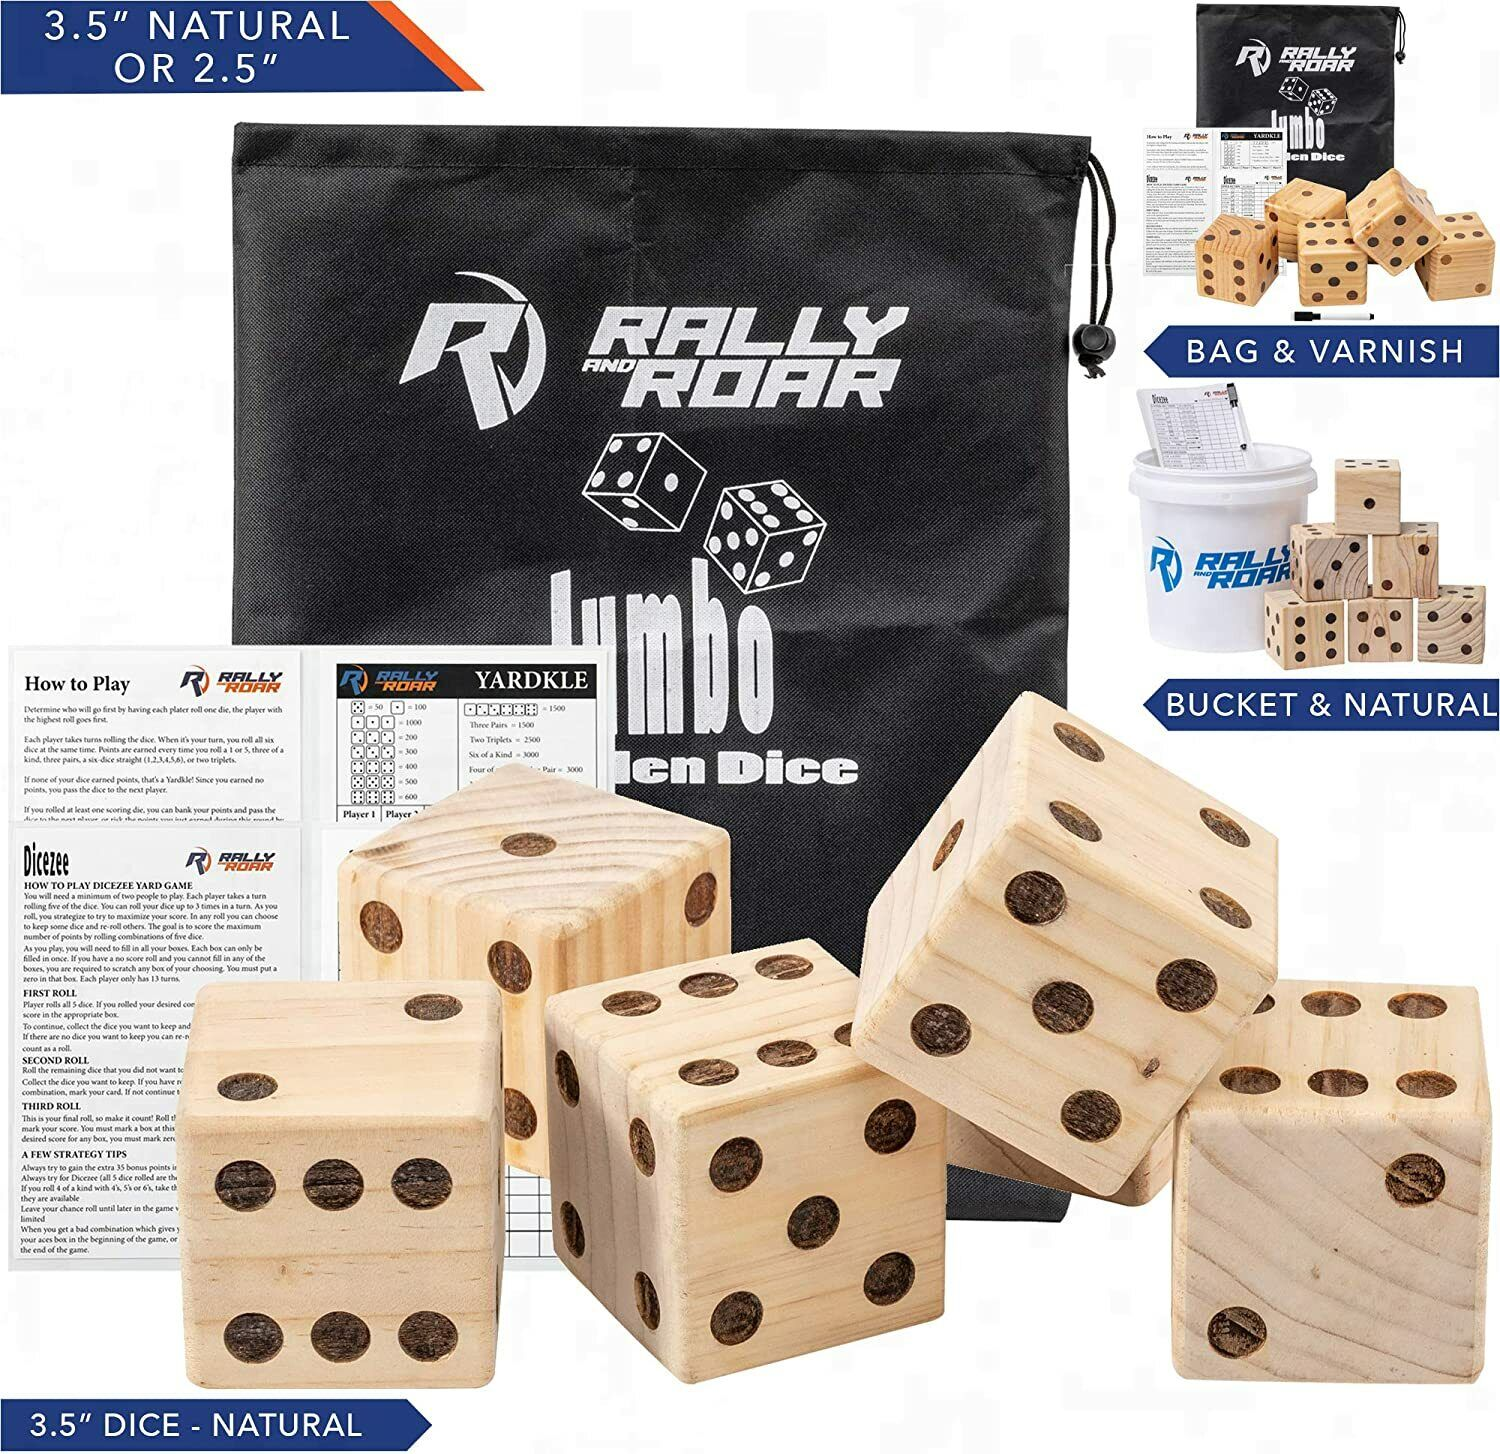 Giant Dice Game Set For Adults Kids Families Outdoor Wooden Dice Games Sets Ebay